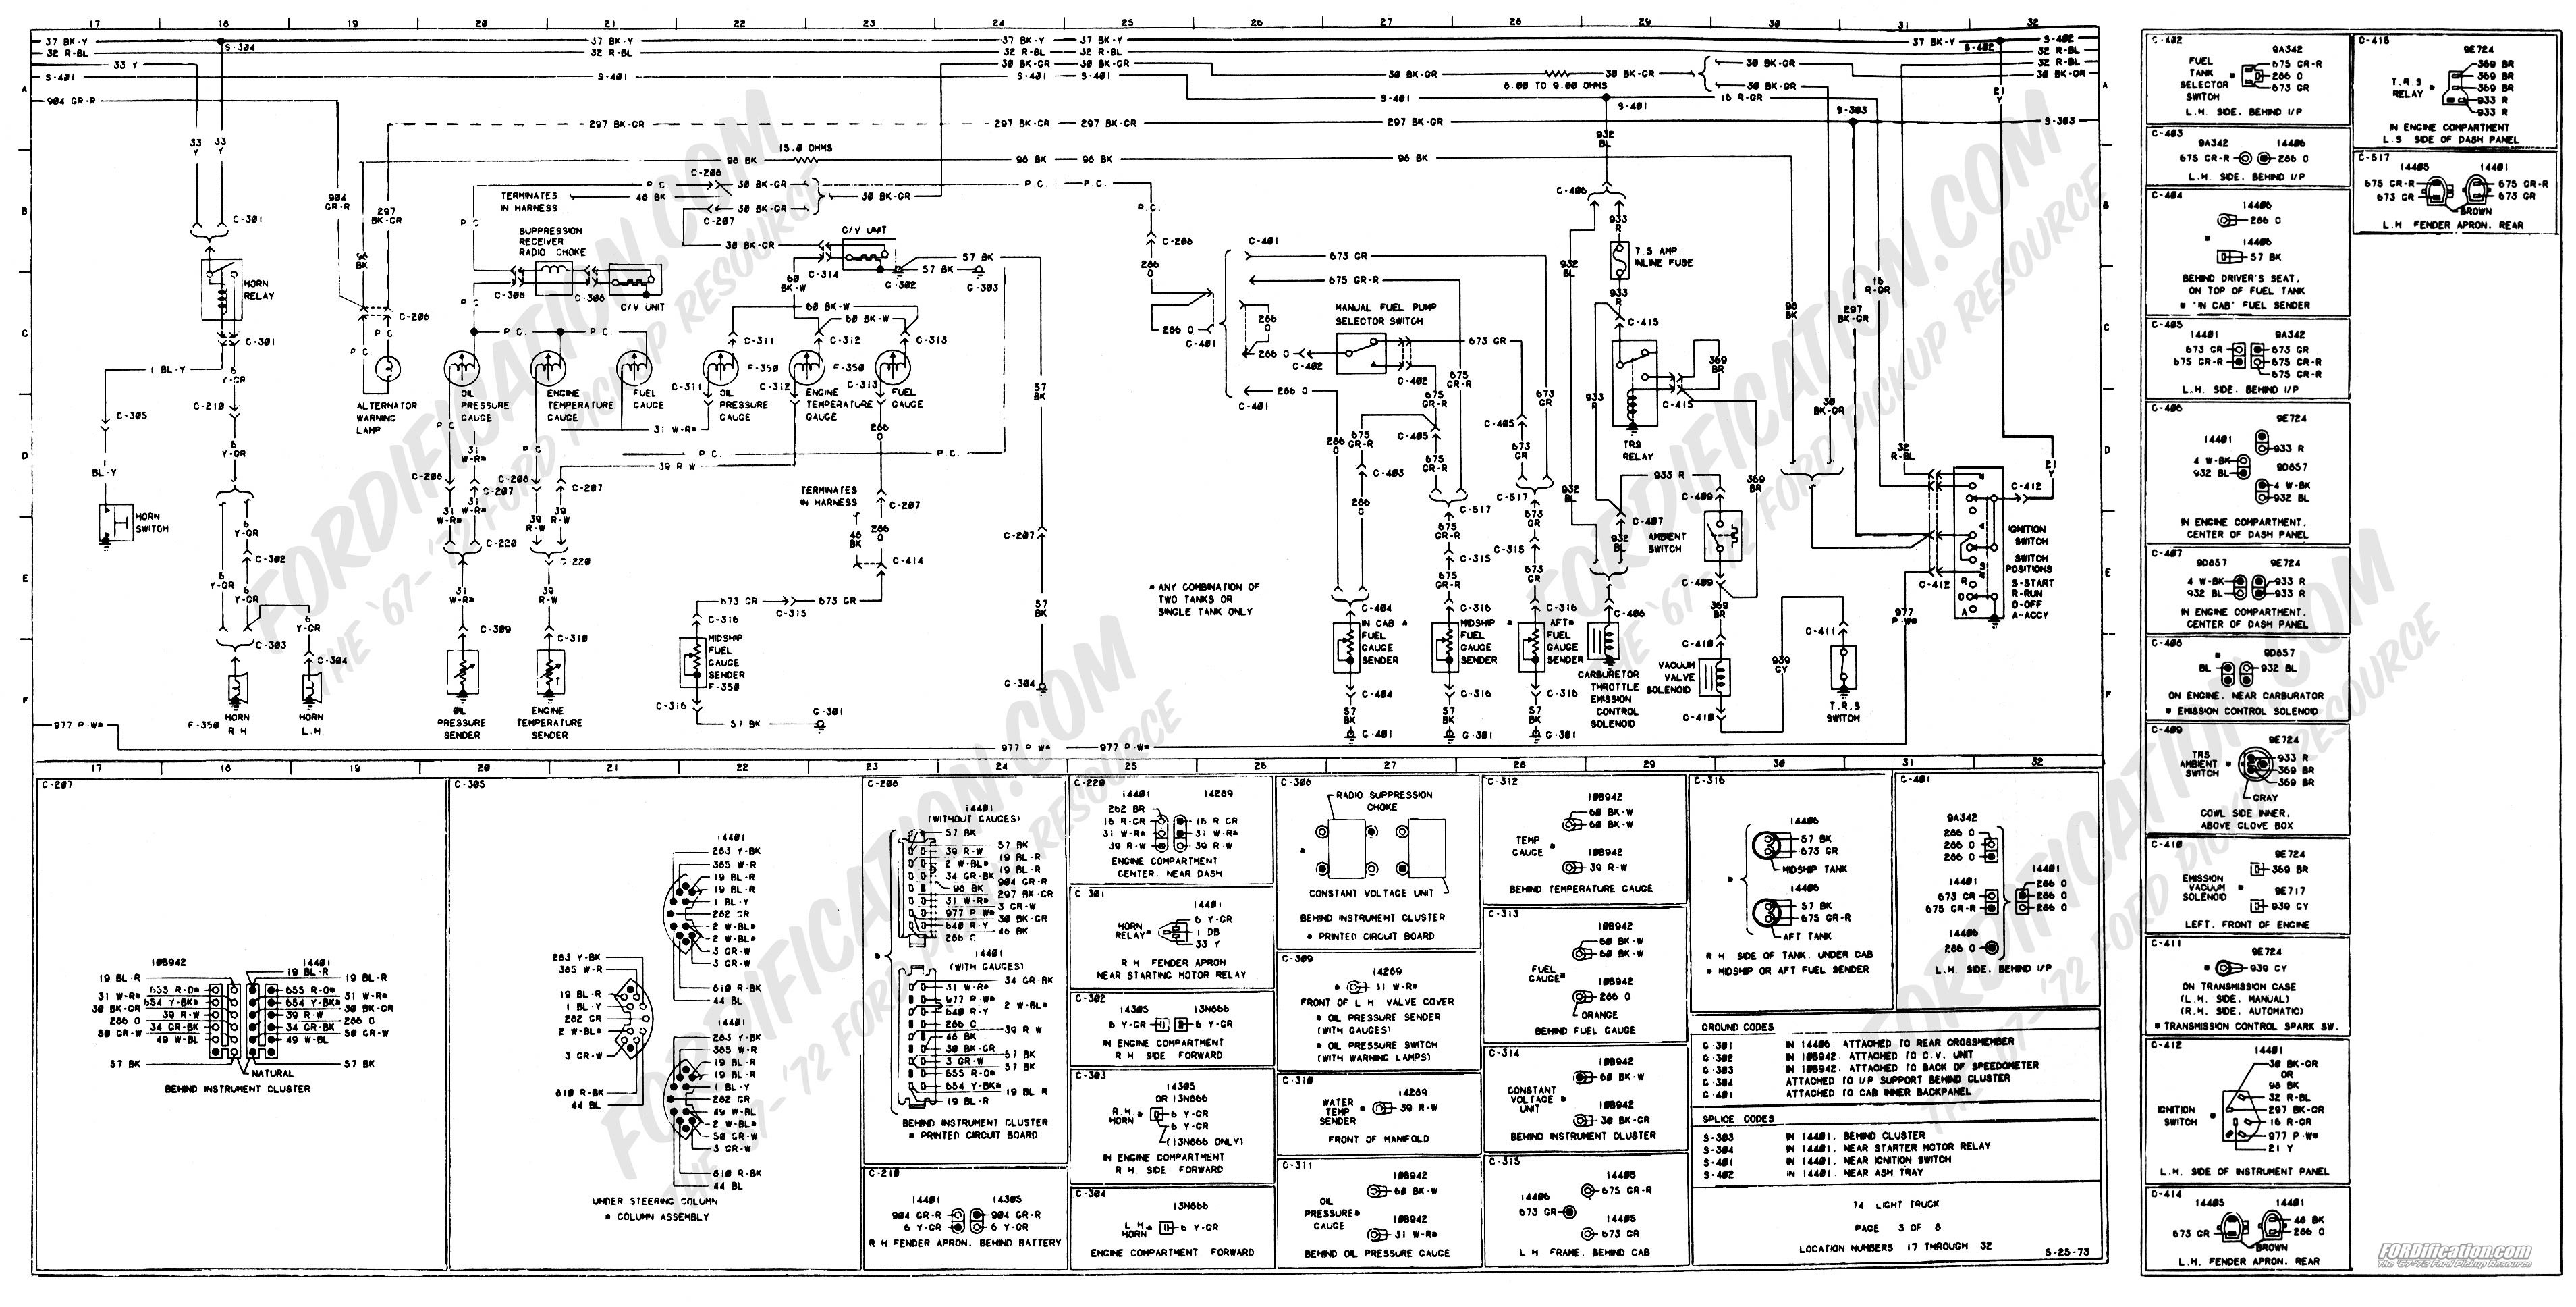 wiring diagram for 1979 gmc sierra